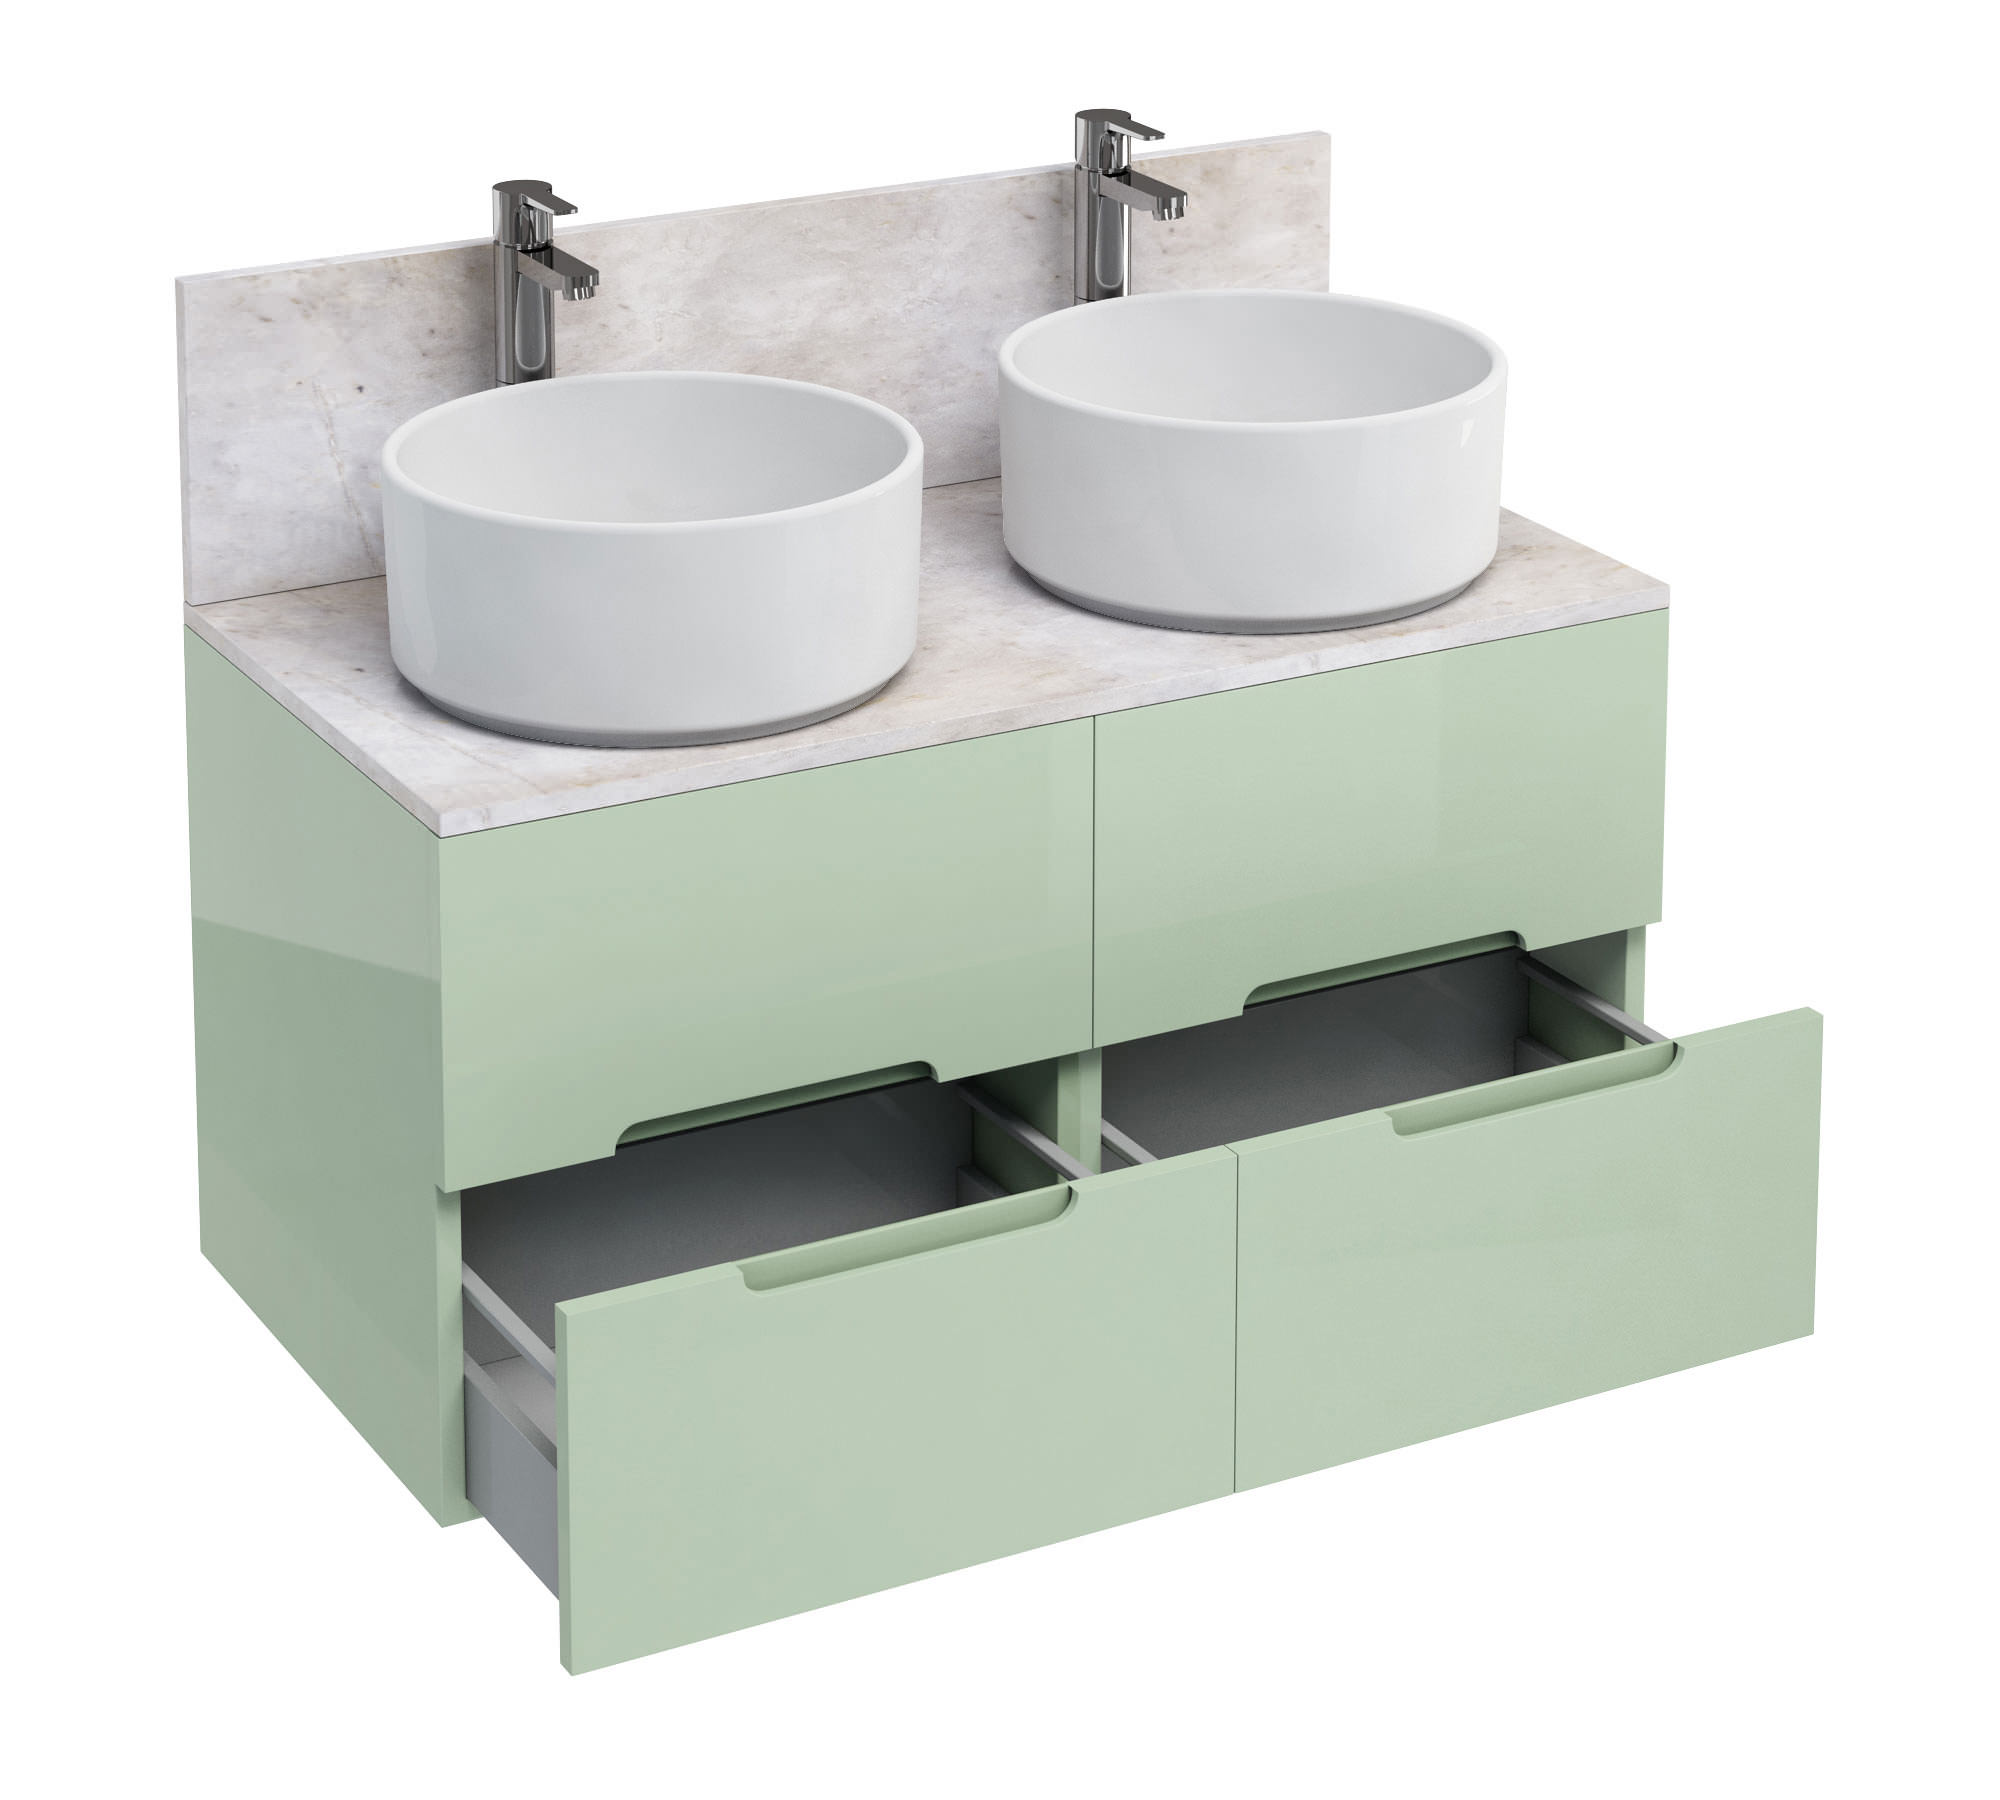 of britton aqua cabinets d1000 wall mounted units with 2 round basin